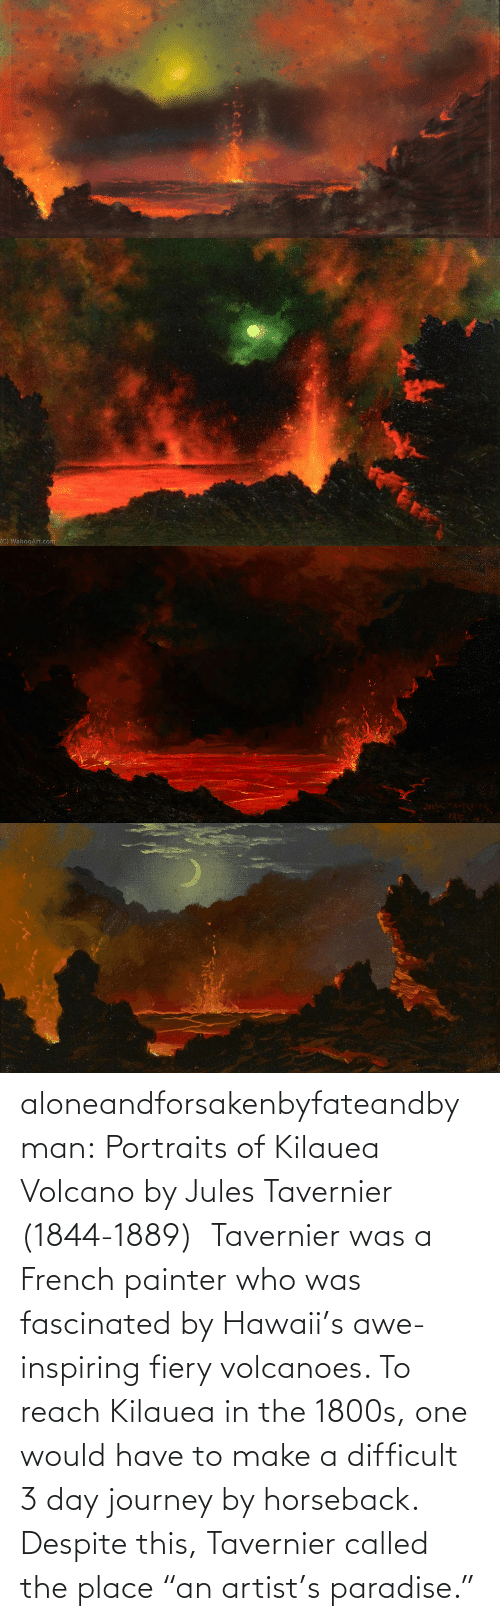 "Hawaii: aloneandforsakenbyfateandbyman:  Portraits of Kilauea Volcano by Jules Tavernier (1844-1889)    Tavernier was a French painter who was fascinated by Hawaii's awe-inspiring fiery volcanoes. To reach Kilauea in the 1800s, one would have to make a difficult 3 day journey by horseback. Despite this, Tavernier called the place ""an artist's paradise."""